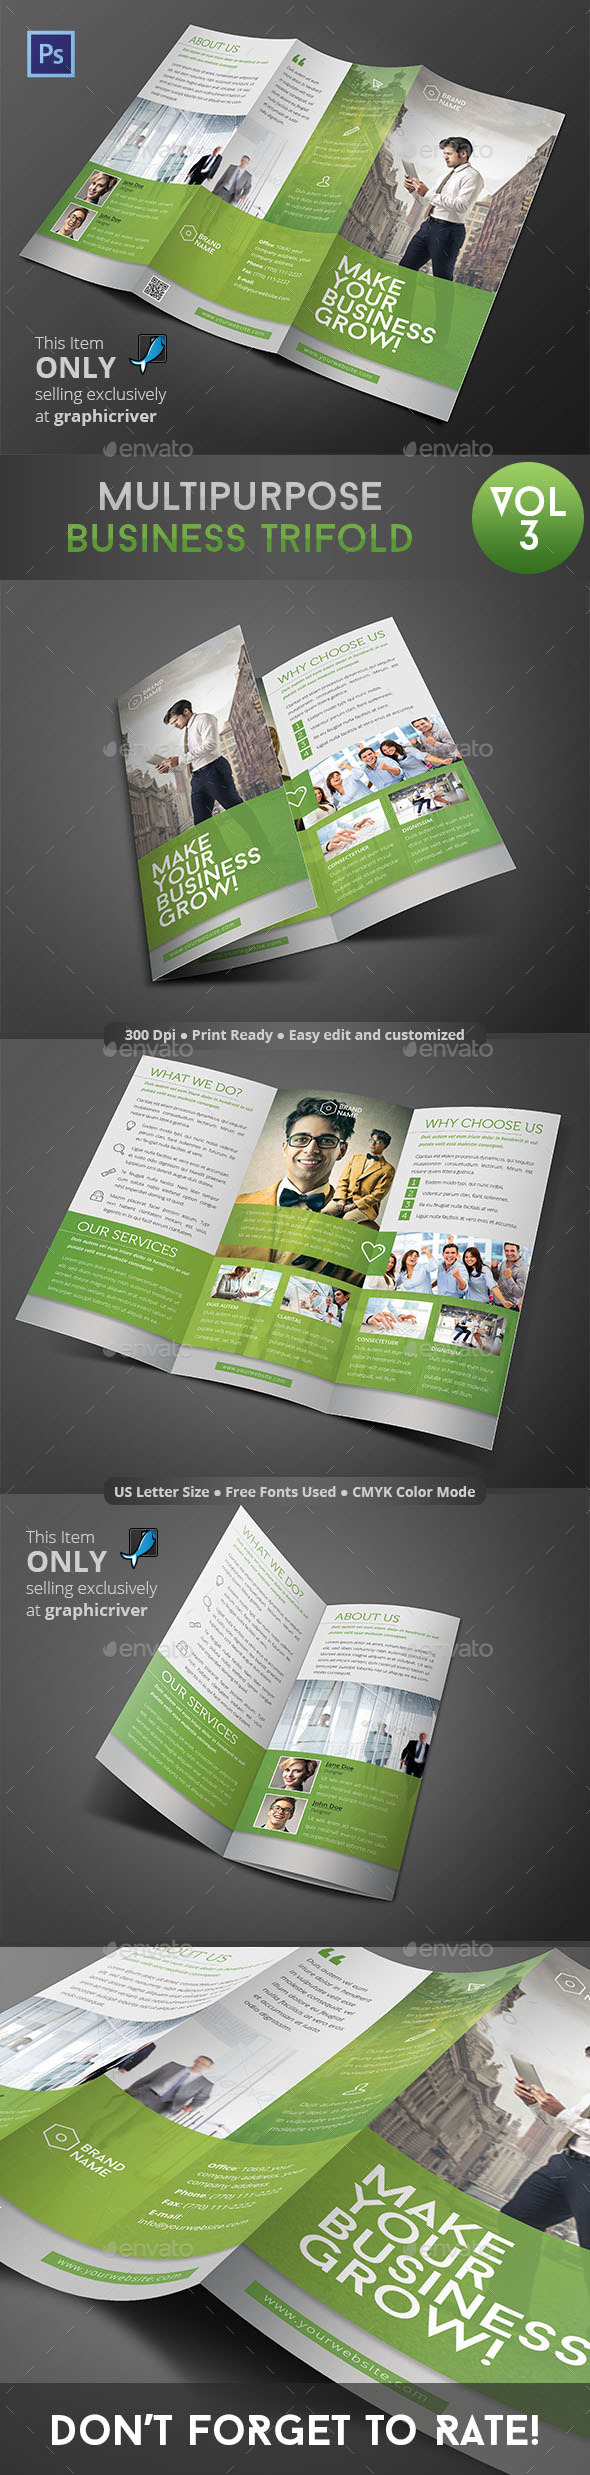 Multipurpose Business Trifold Vol 3 - Informational Brochures